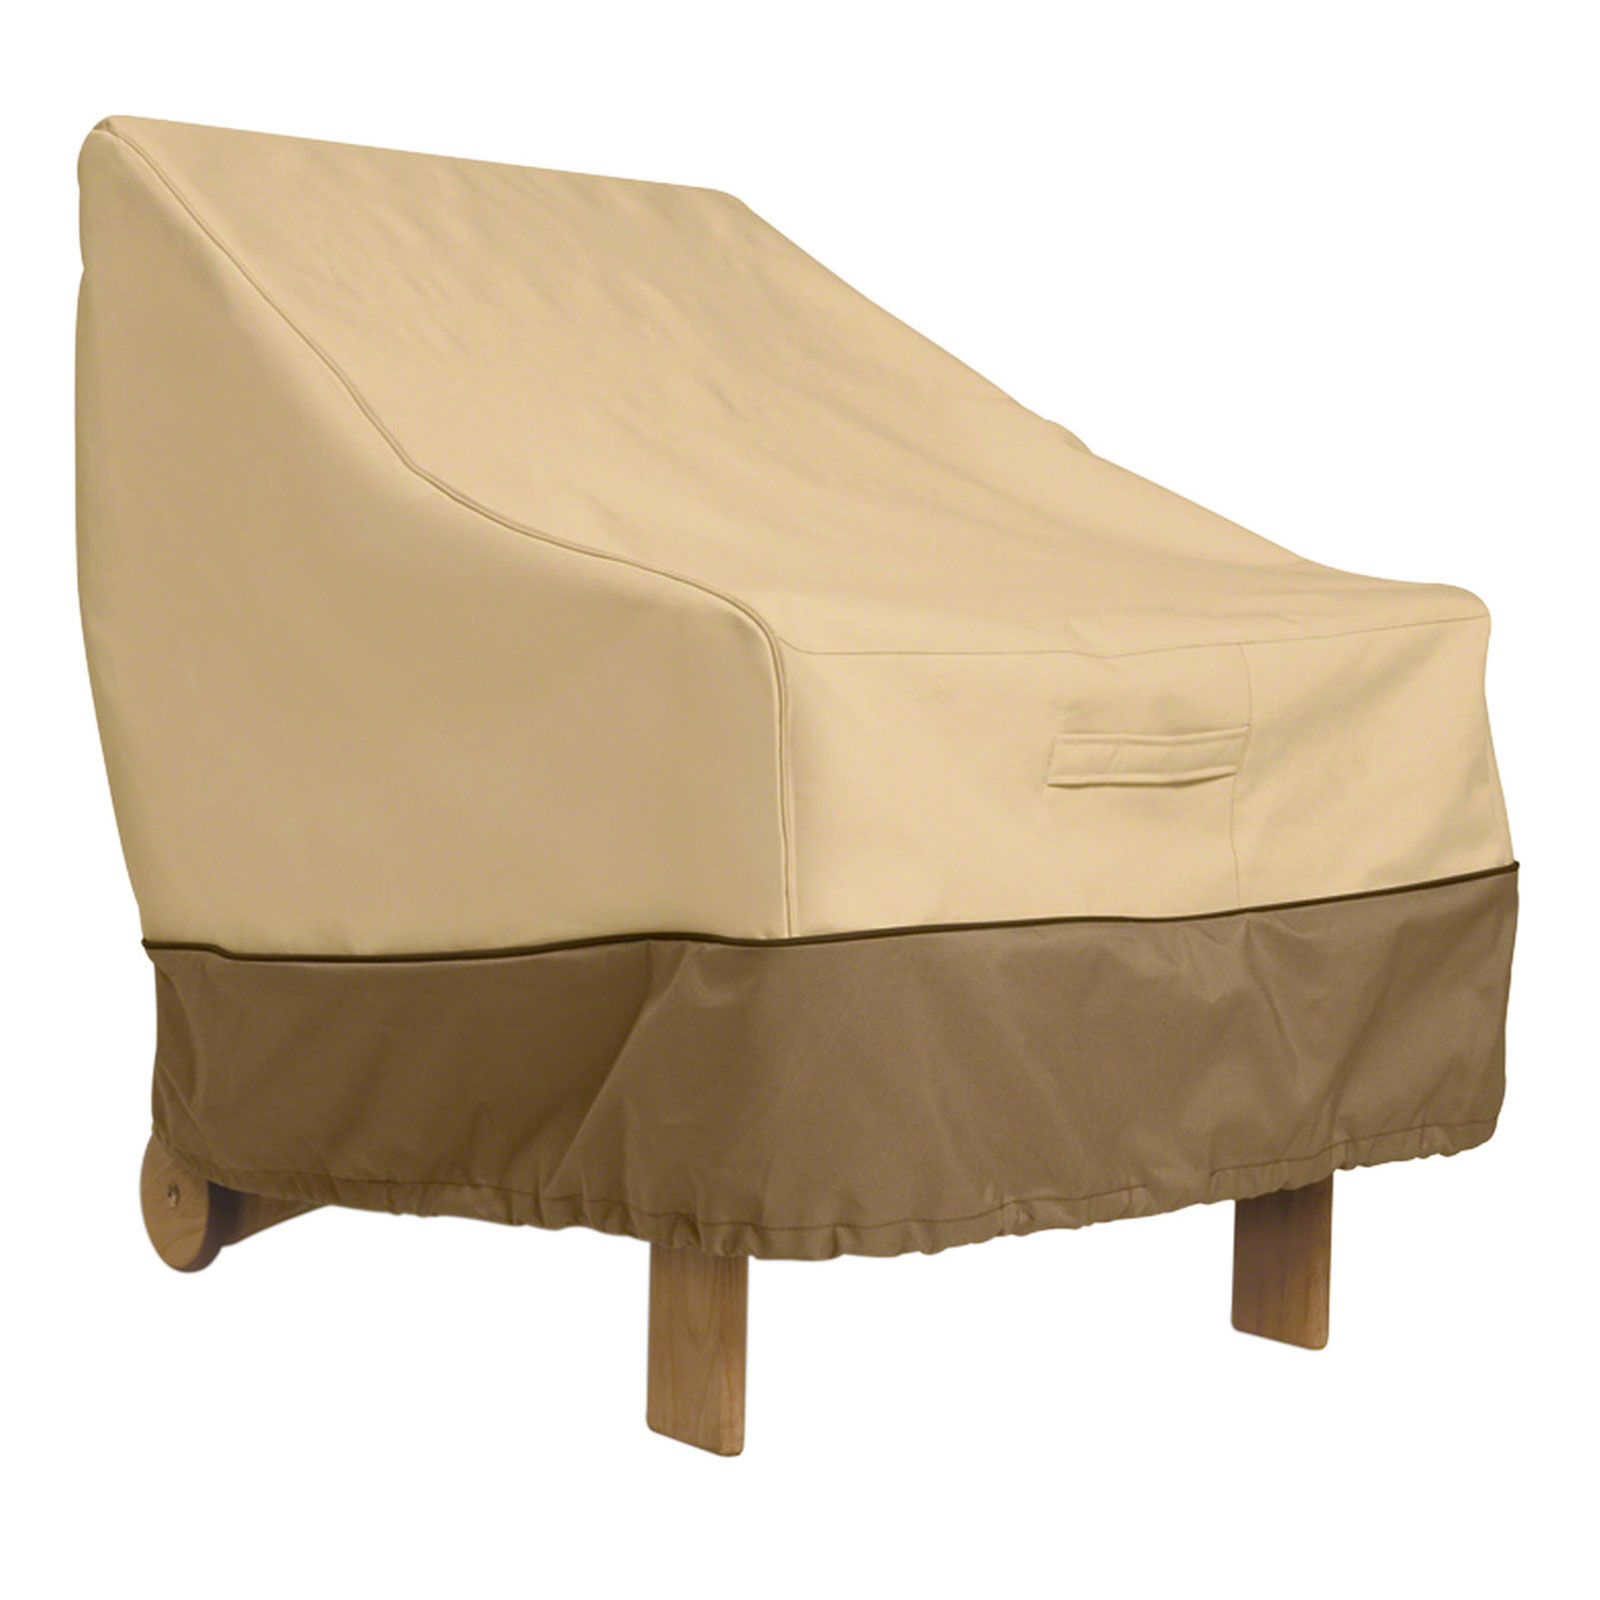 Patio Chair Cover Lounge Chair Cover Veranda In Patio Furniture Covers